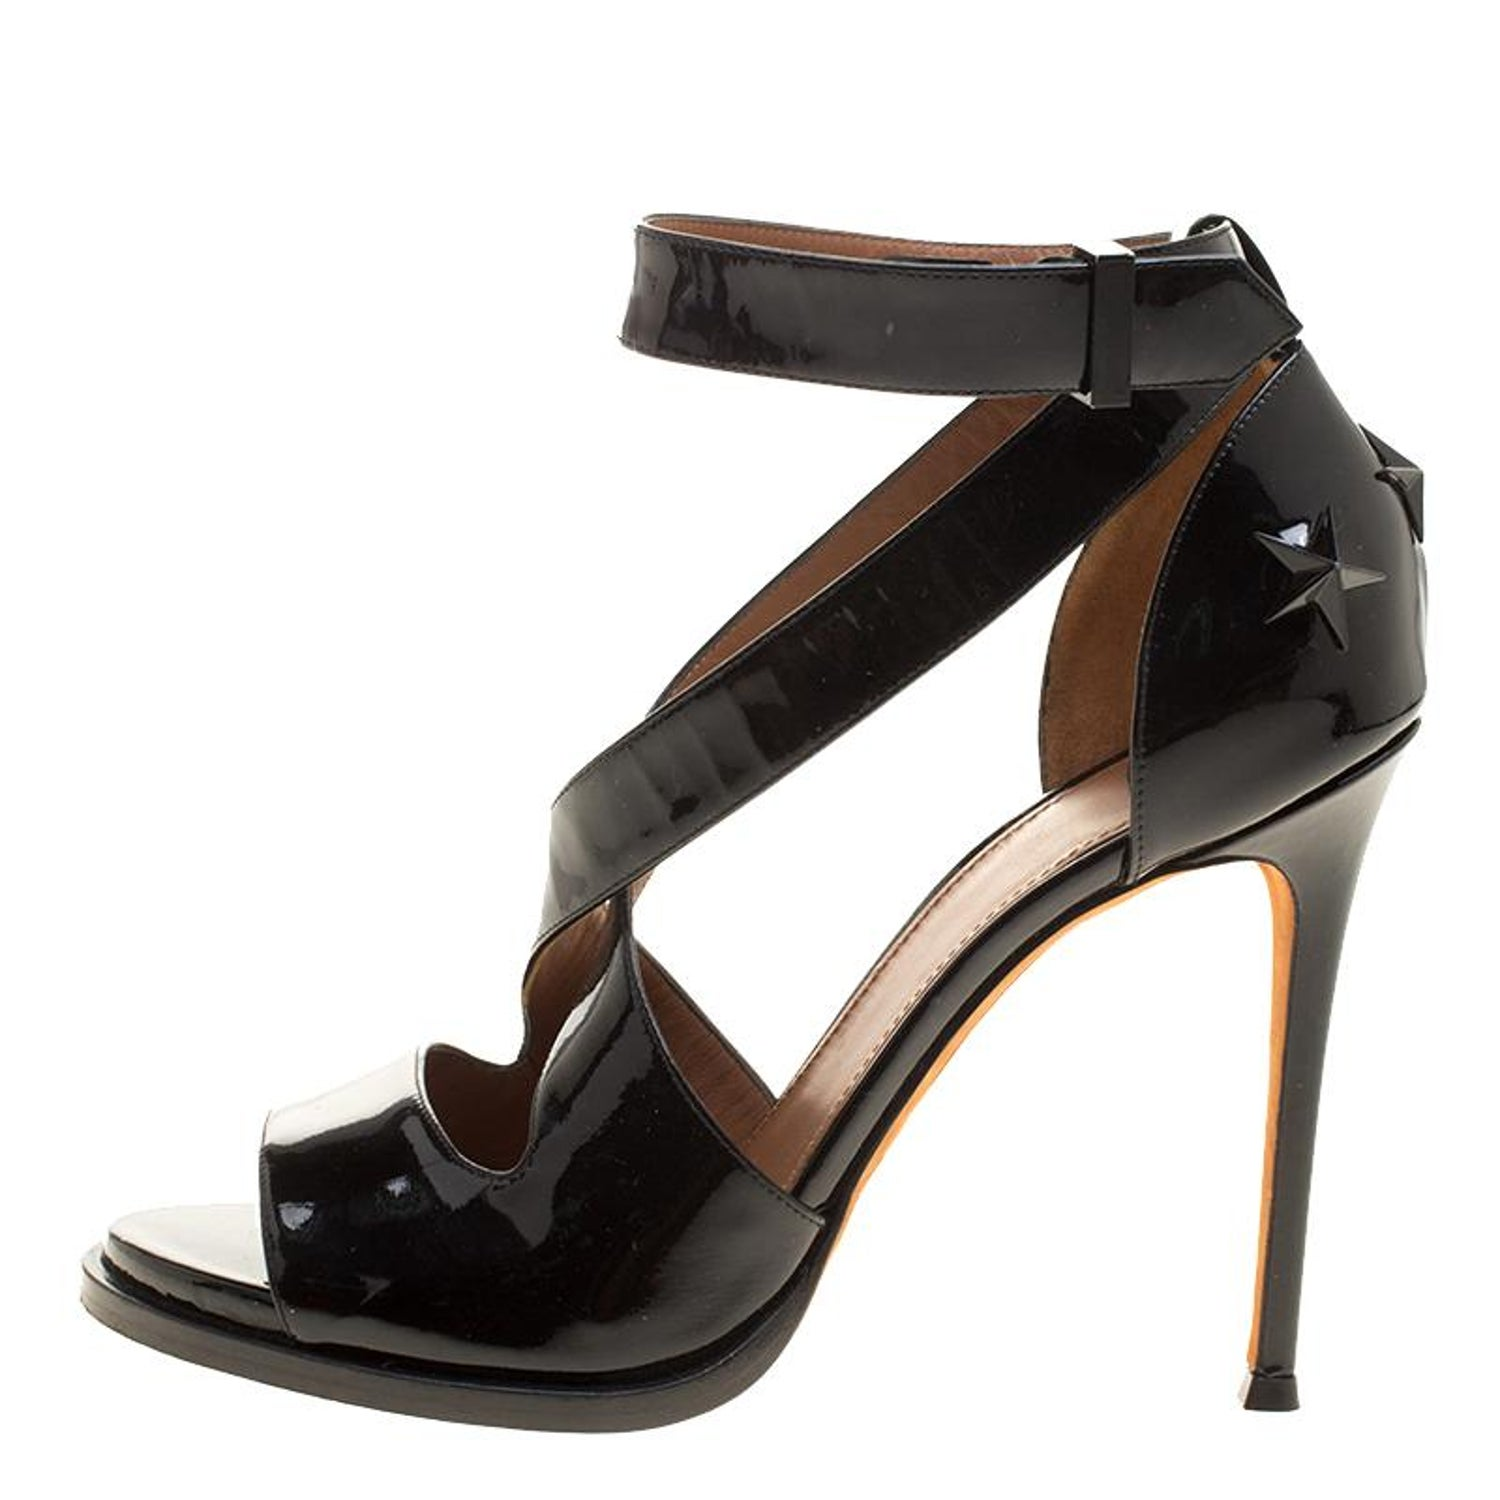 e16b809536c2 Givenchy Black Patent Leather Star Studded Cross Ankle Strap Sandals Size  38.5 For Sale at 1stdibs